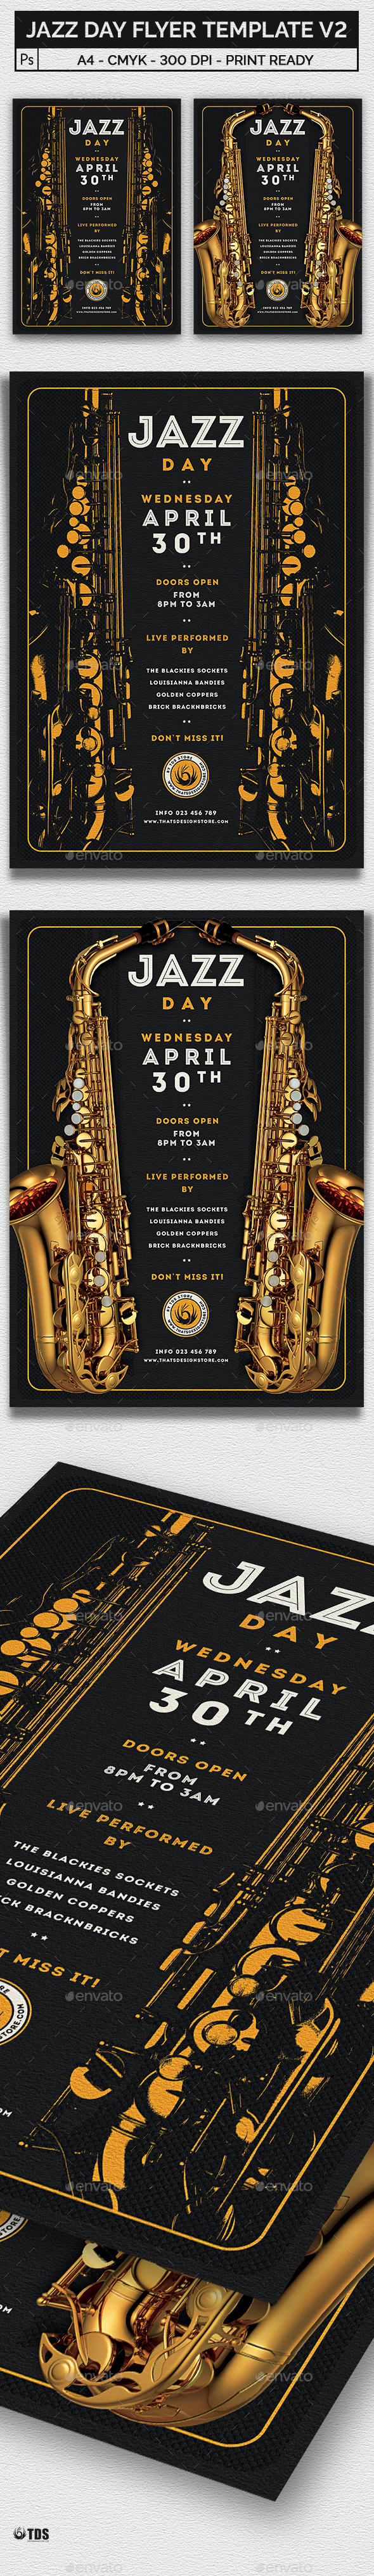 GraphicRiver Jazz Day Flyer Template V2 20984795